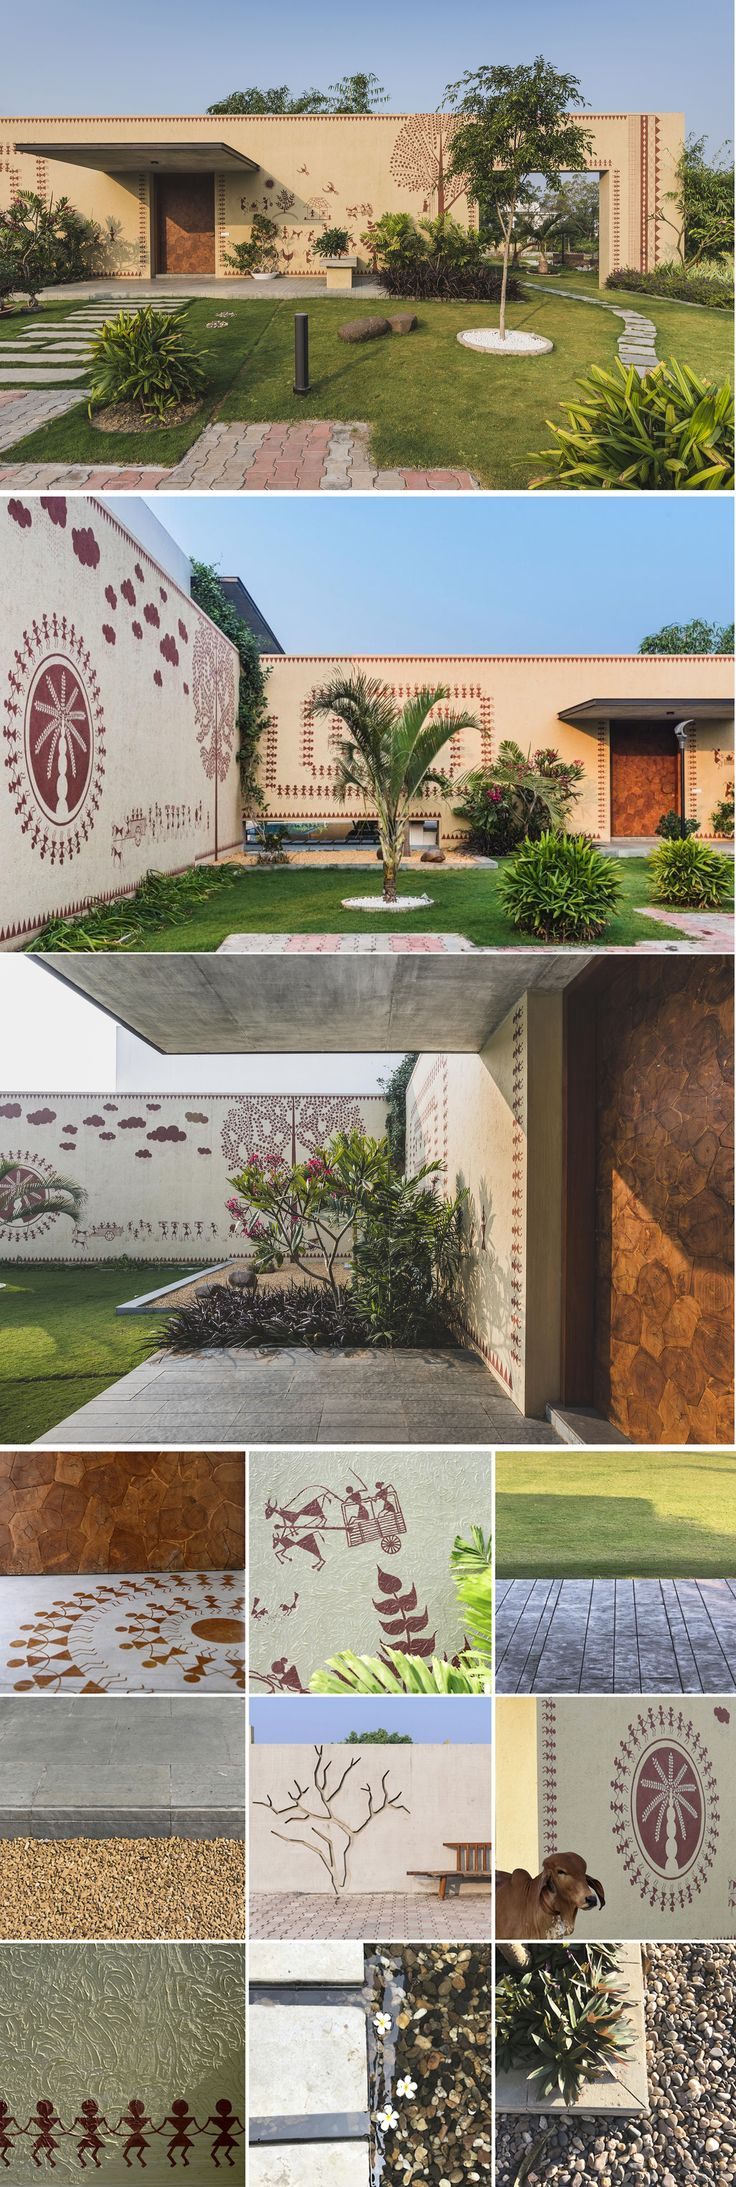 Padippura design images shape kerala home - Warli Art Painting Adds A Charm To This Rural House Design Work Group